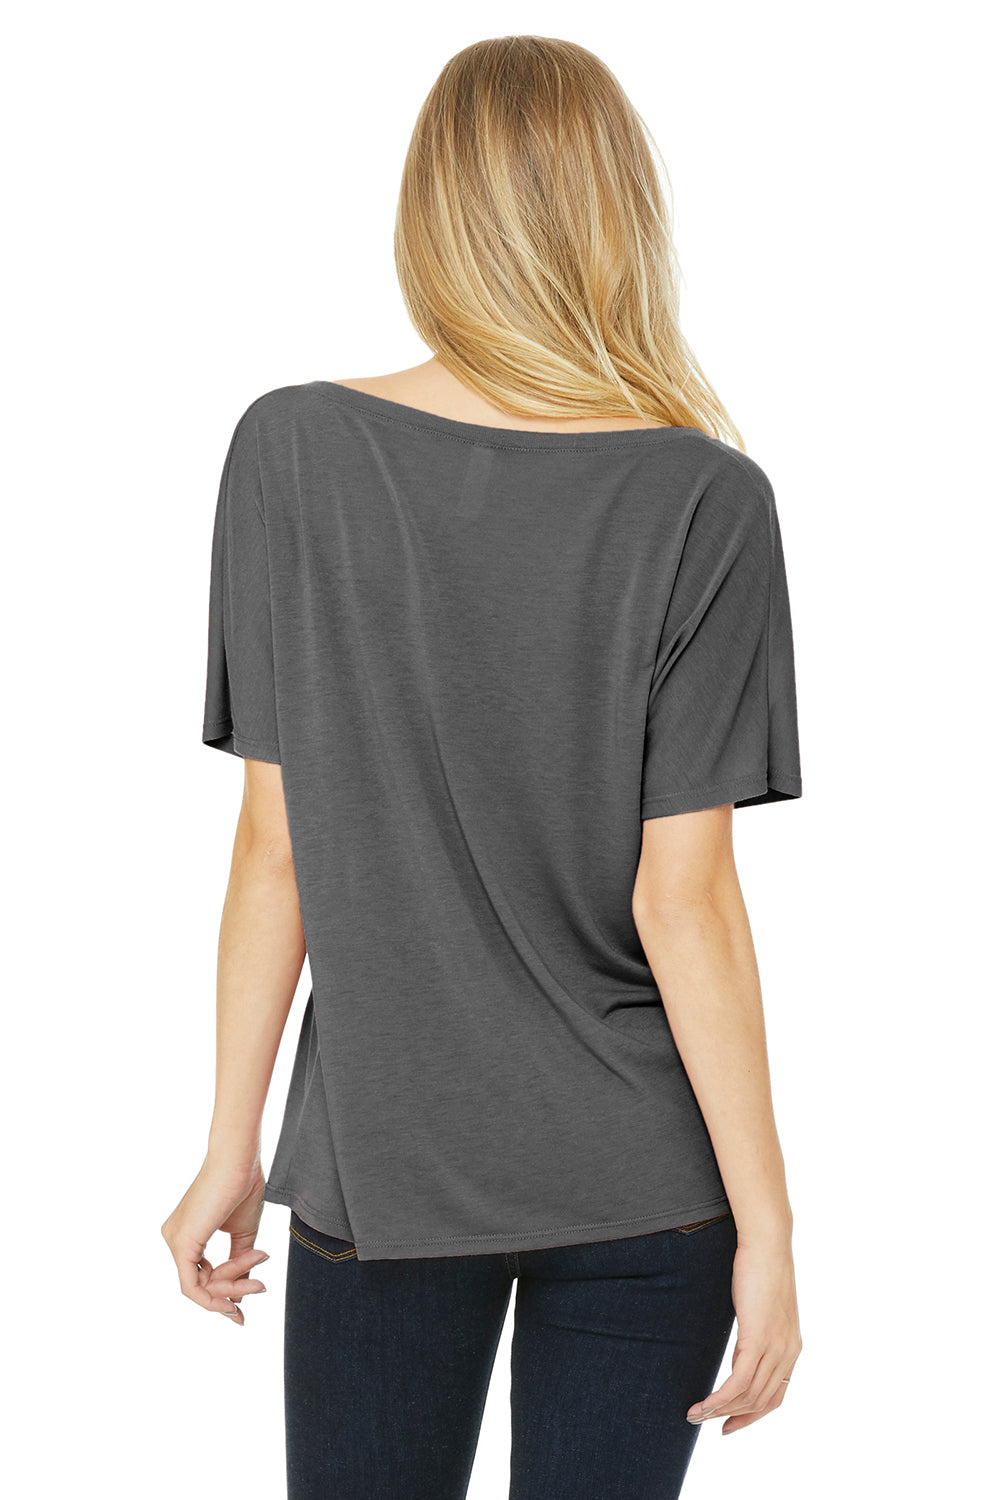 Bella + Canvas 8815 Womens Slouchy Short Sleeve V-Neck T-Shirt Grey Triblend Back